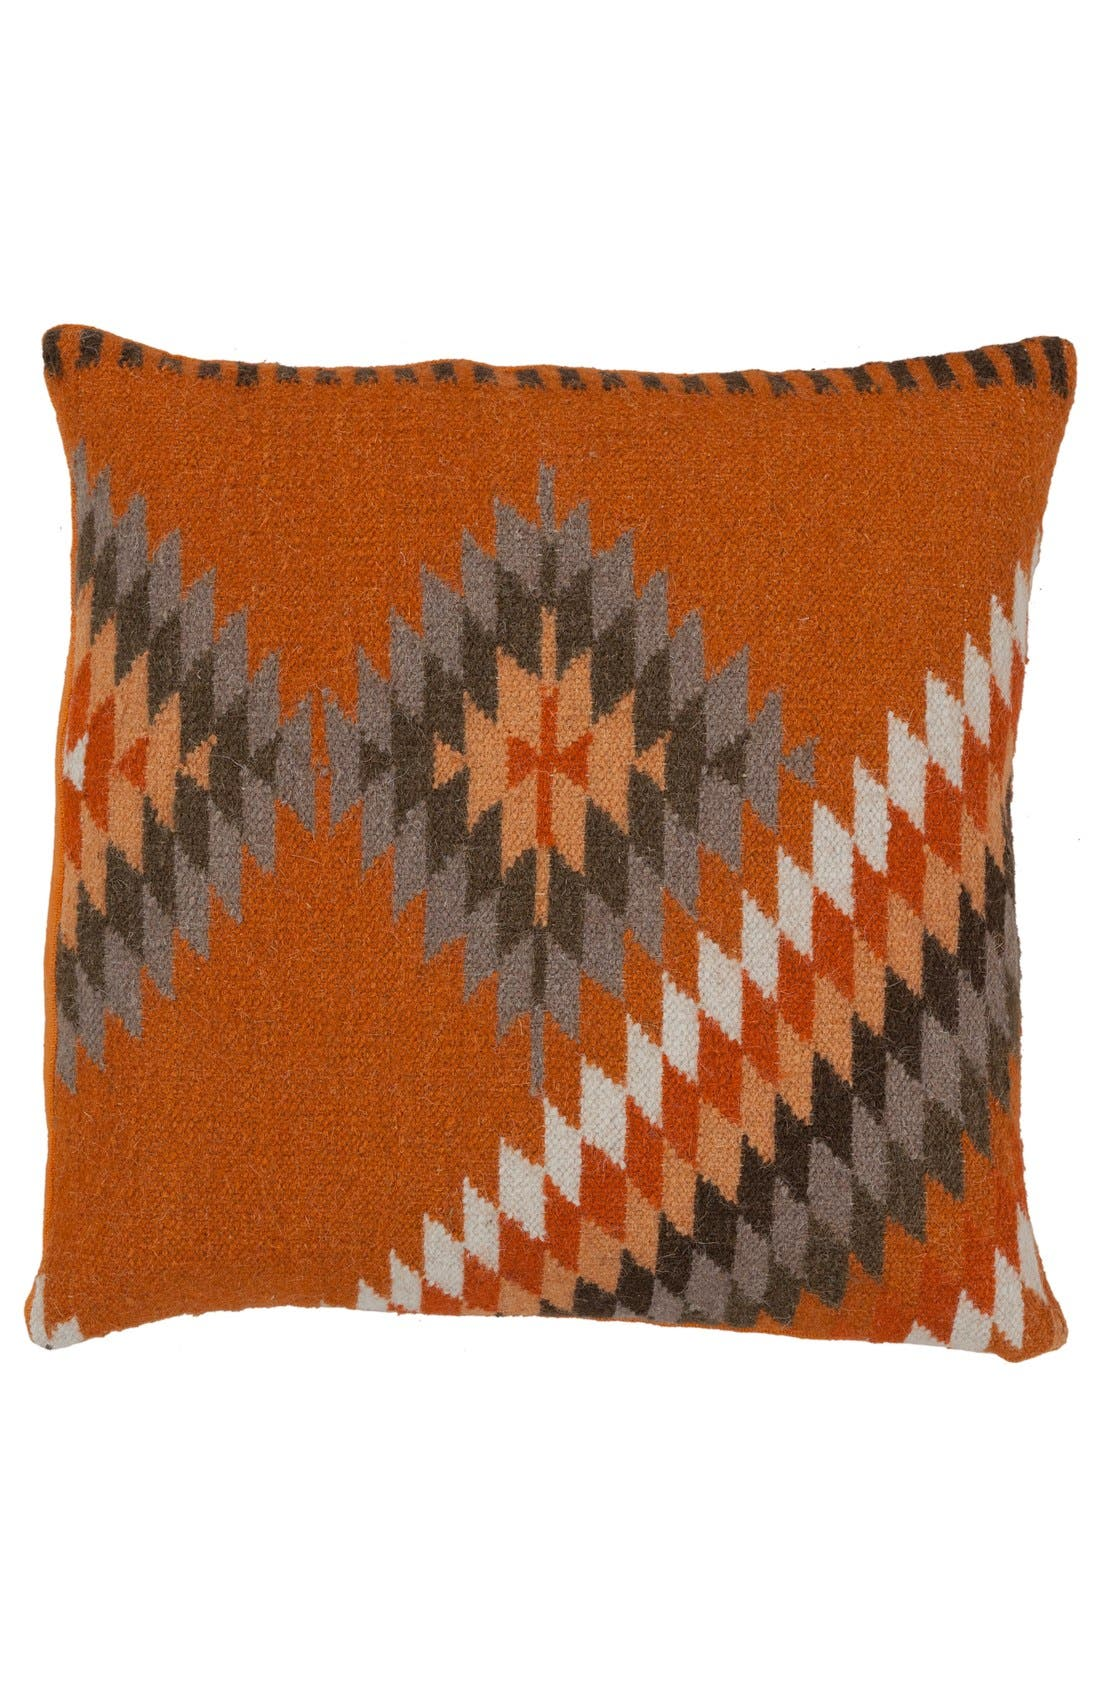 Alternate Image 1 Selected - Surya Home Kilim Wool Accent Pillow Cover